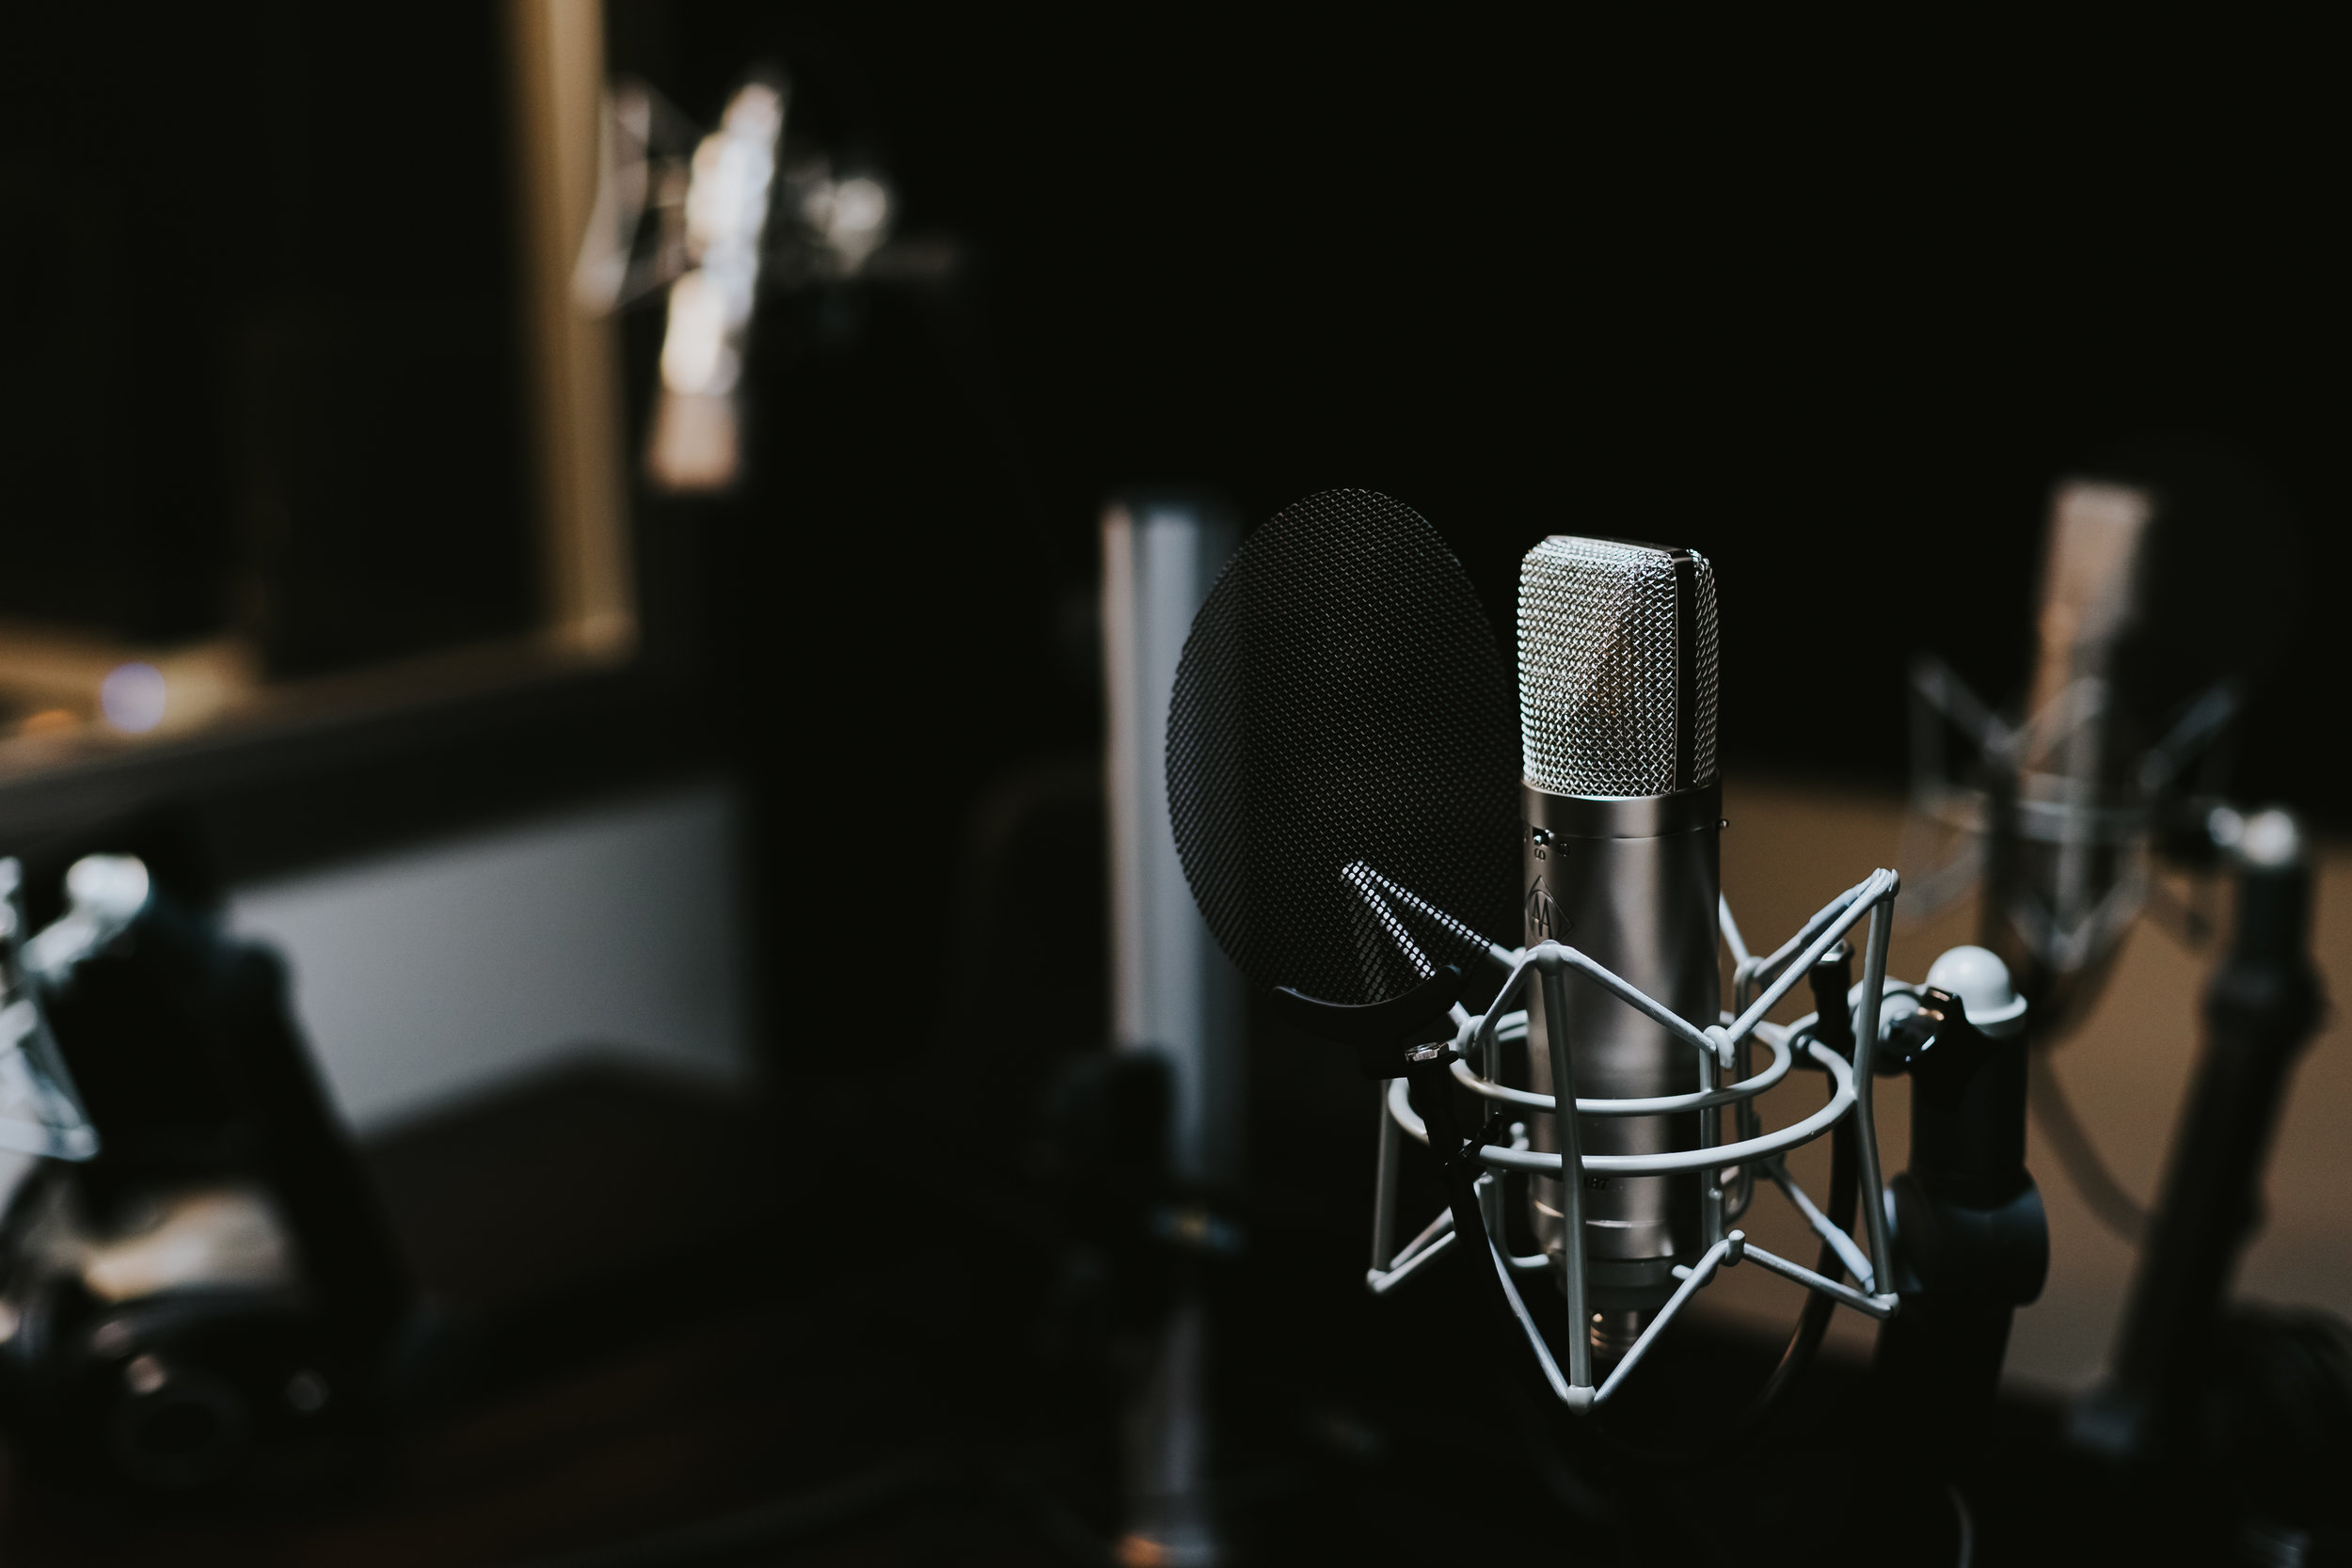 - Podcast Production